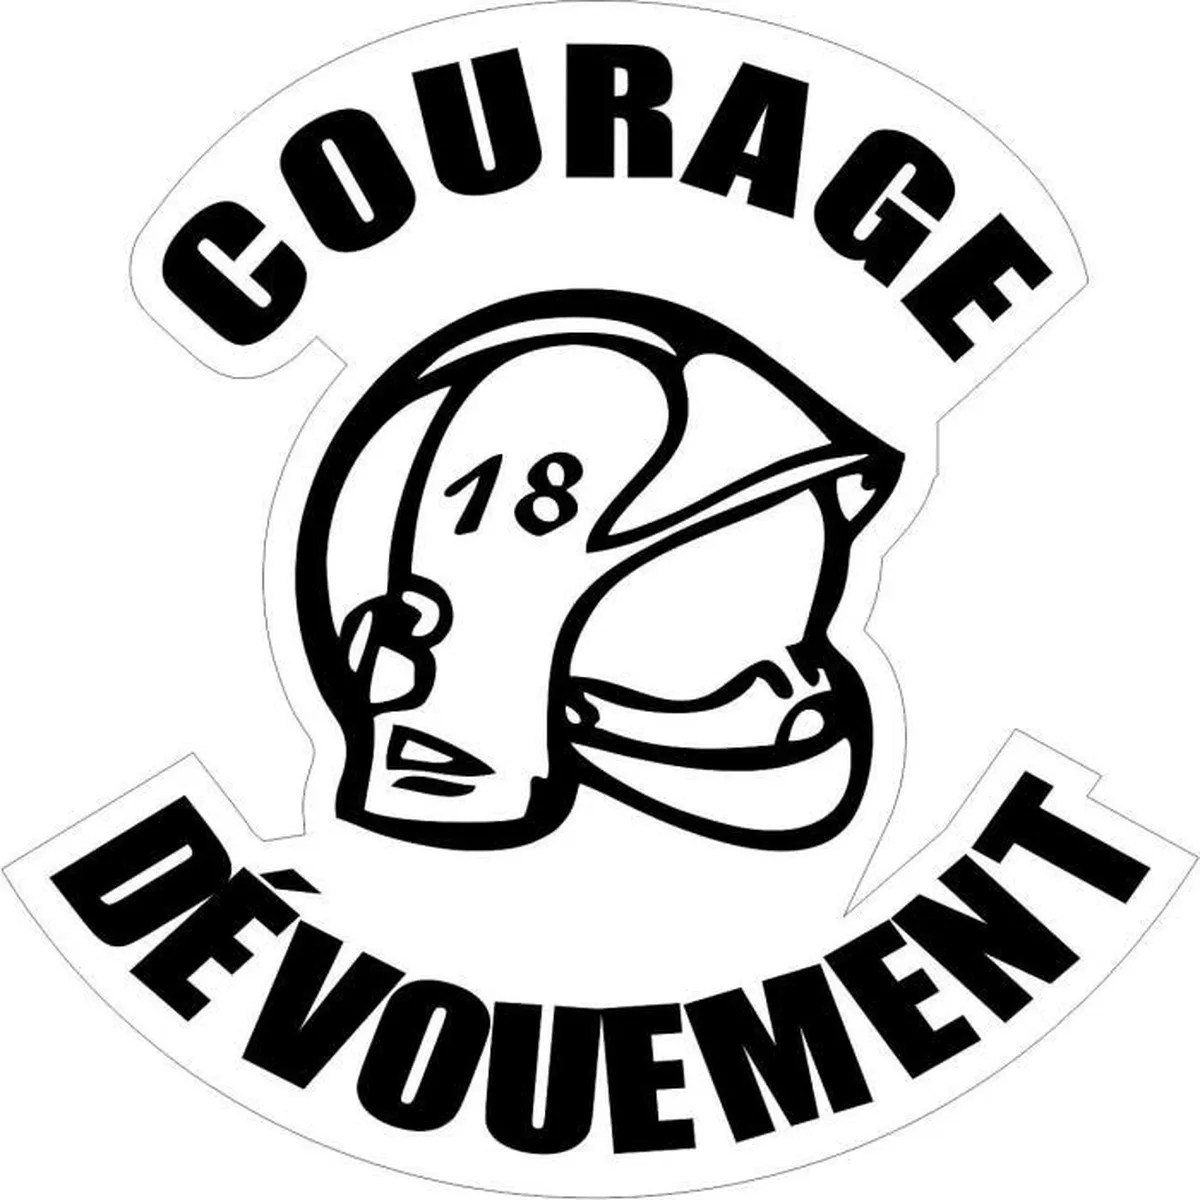 Autocollant Sticker Pompier Casque Courage R1